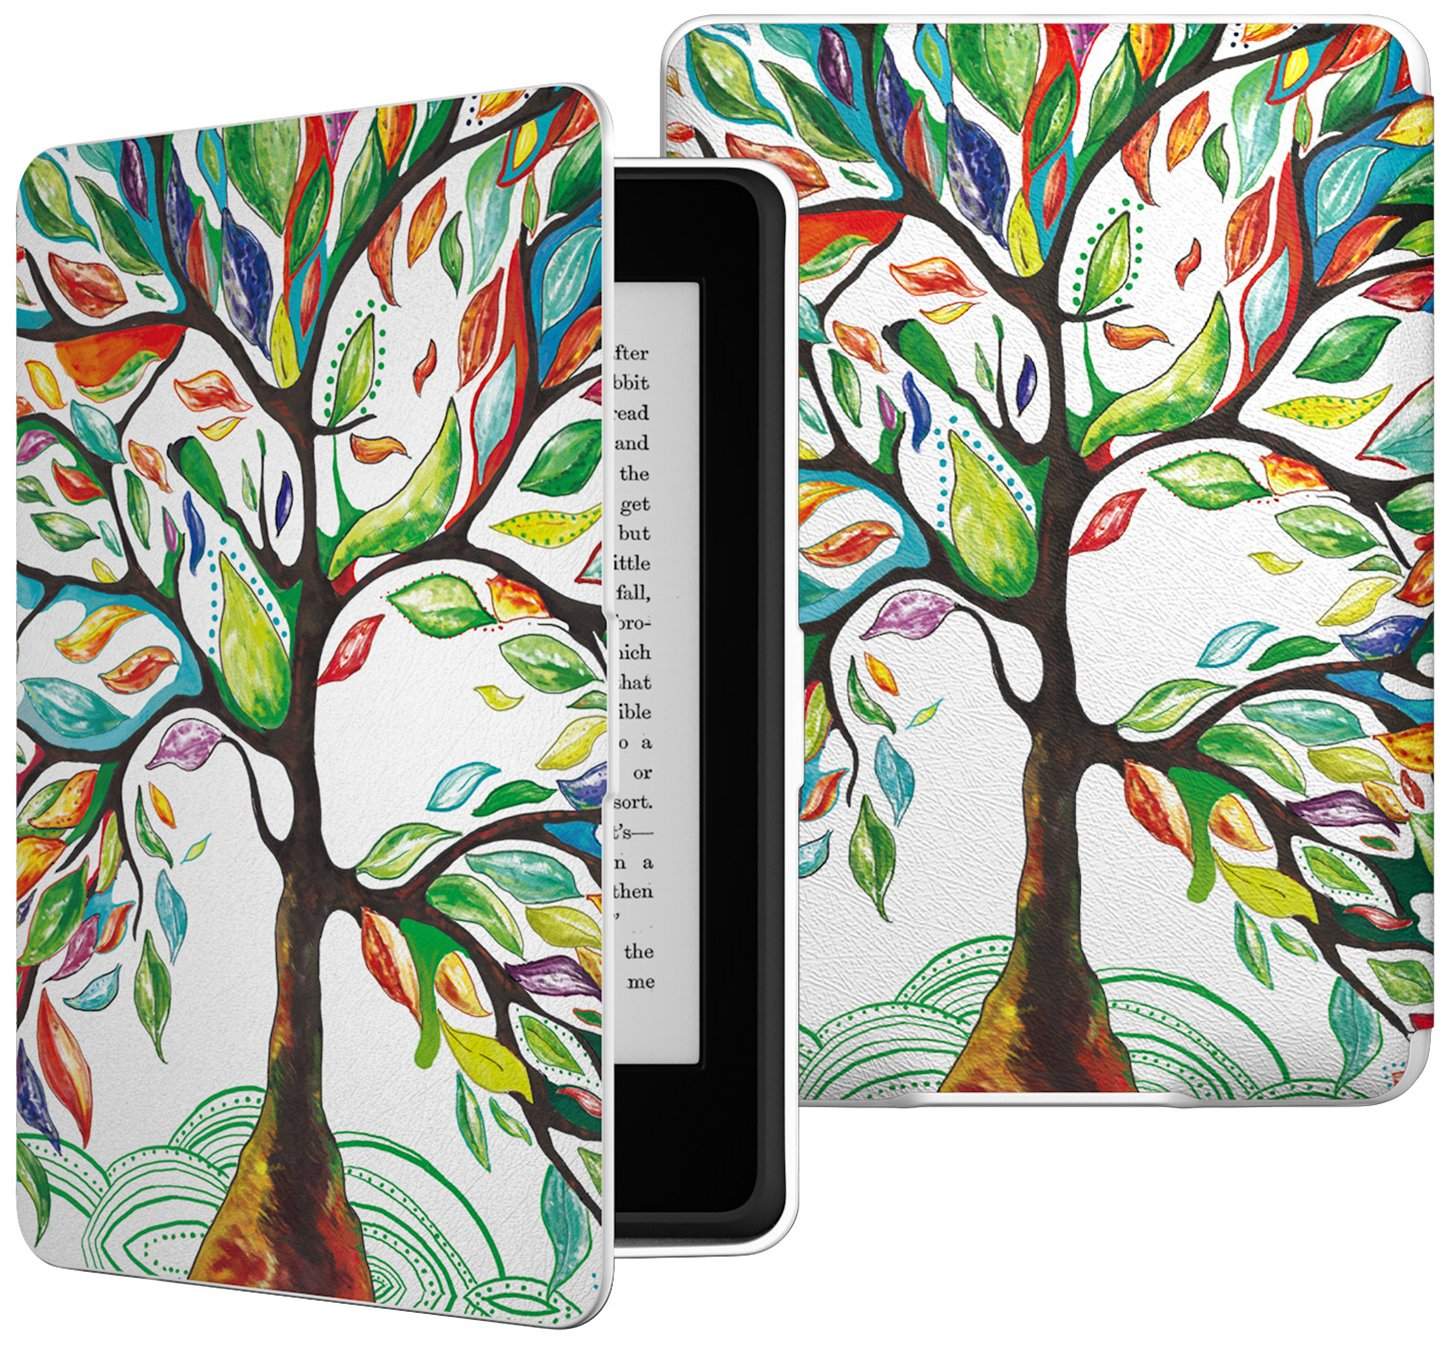 MoKo 741459010997180828 Case for Kindle Paperwhite, Premium Thinnest and Lightest PU Leather Cover with Auto Wake/Sleep for Amazon All-New Kindle Paperwhite (Fits 2012, 2013, 2015 and 2016 Versions), Lucky Tree